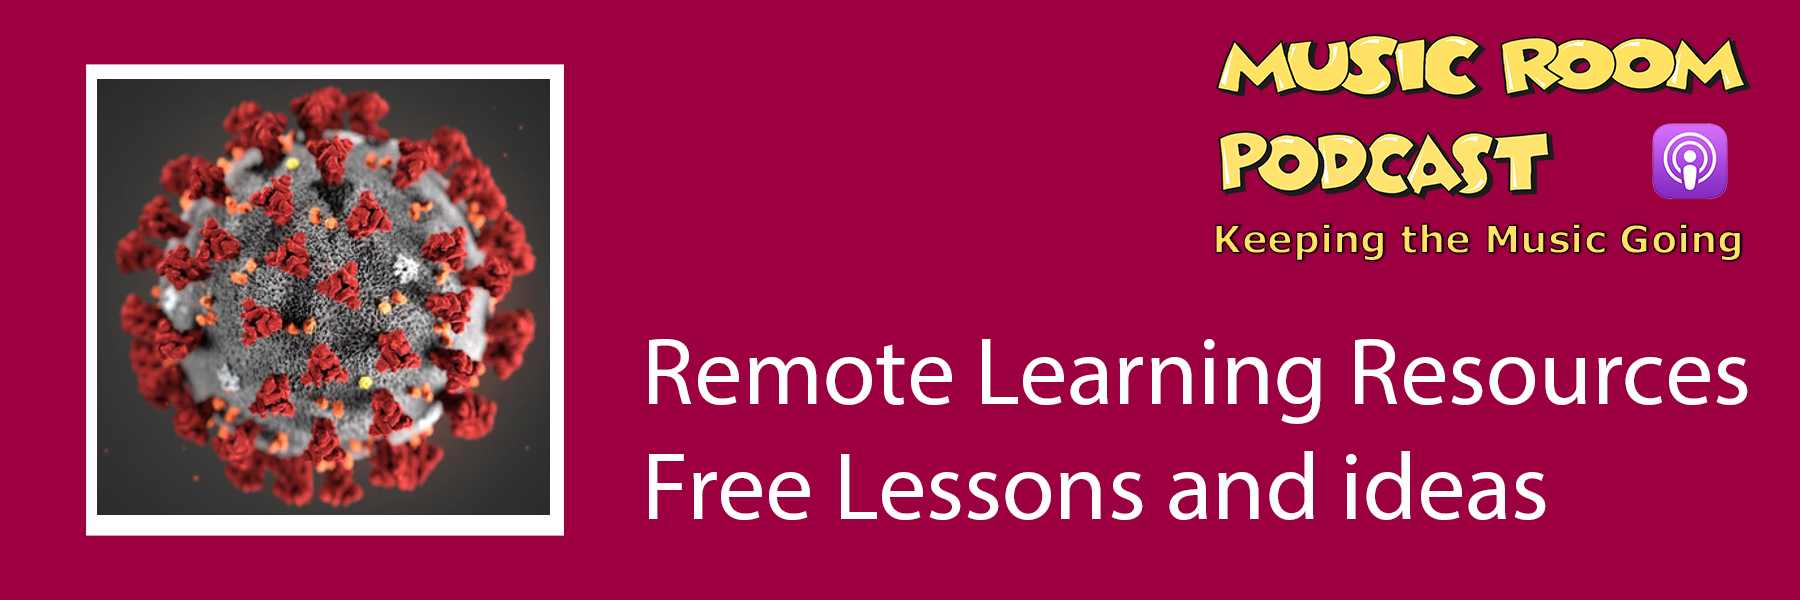 Remote Learning Resources Free Lessons And Ideas Music Room